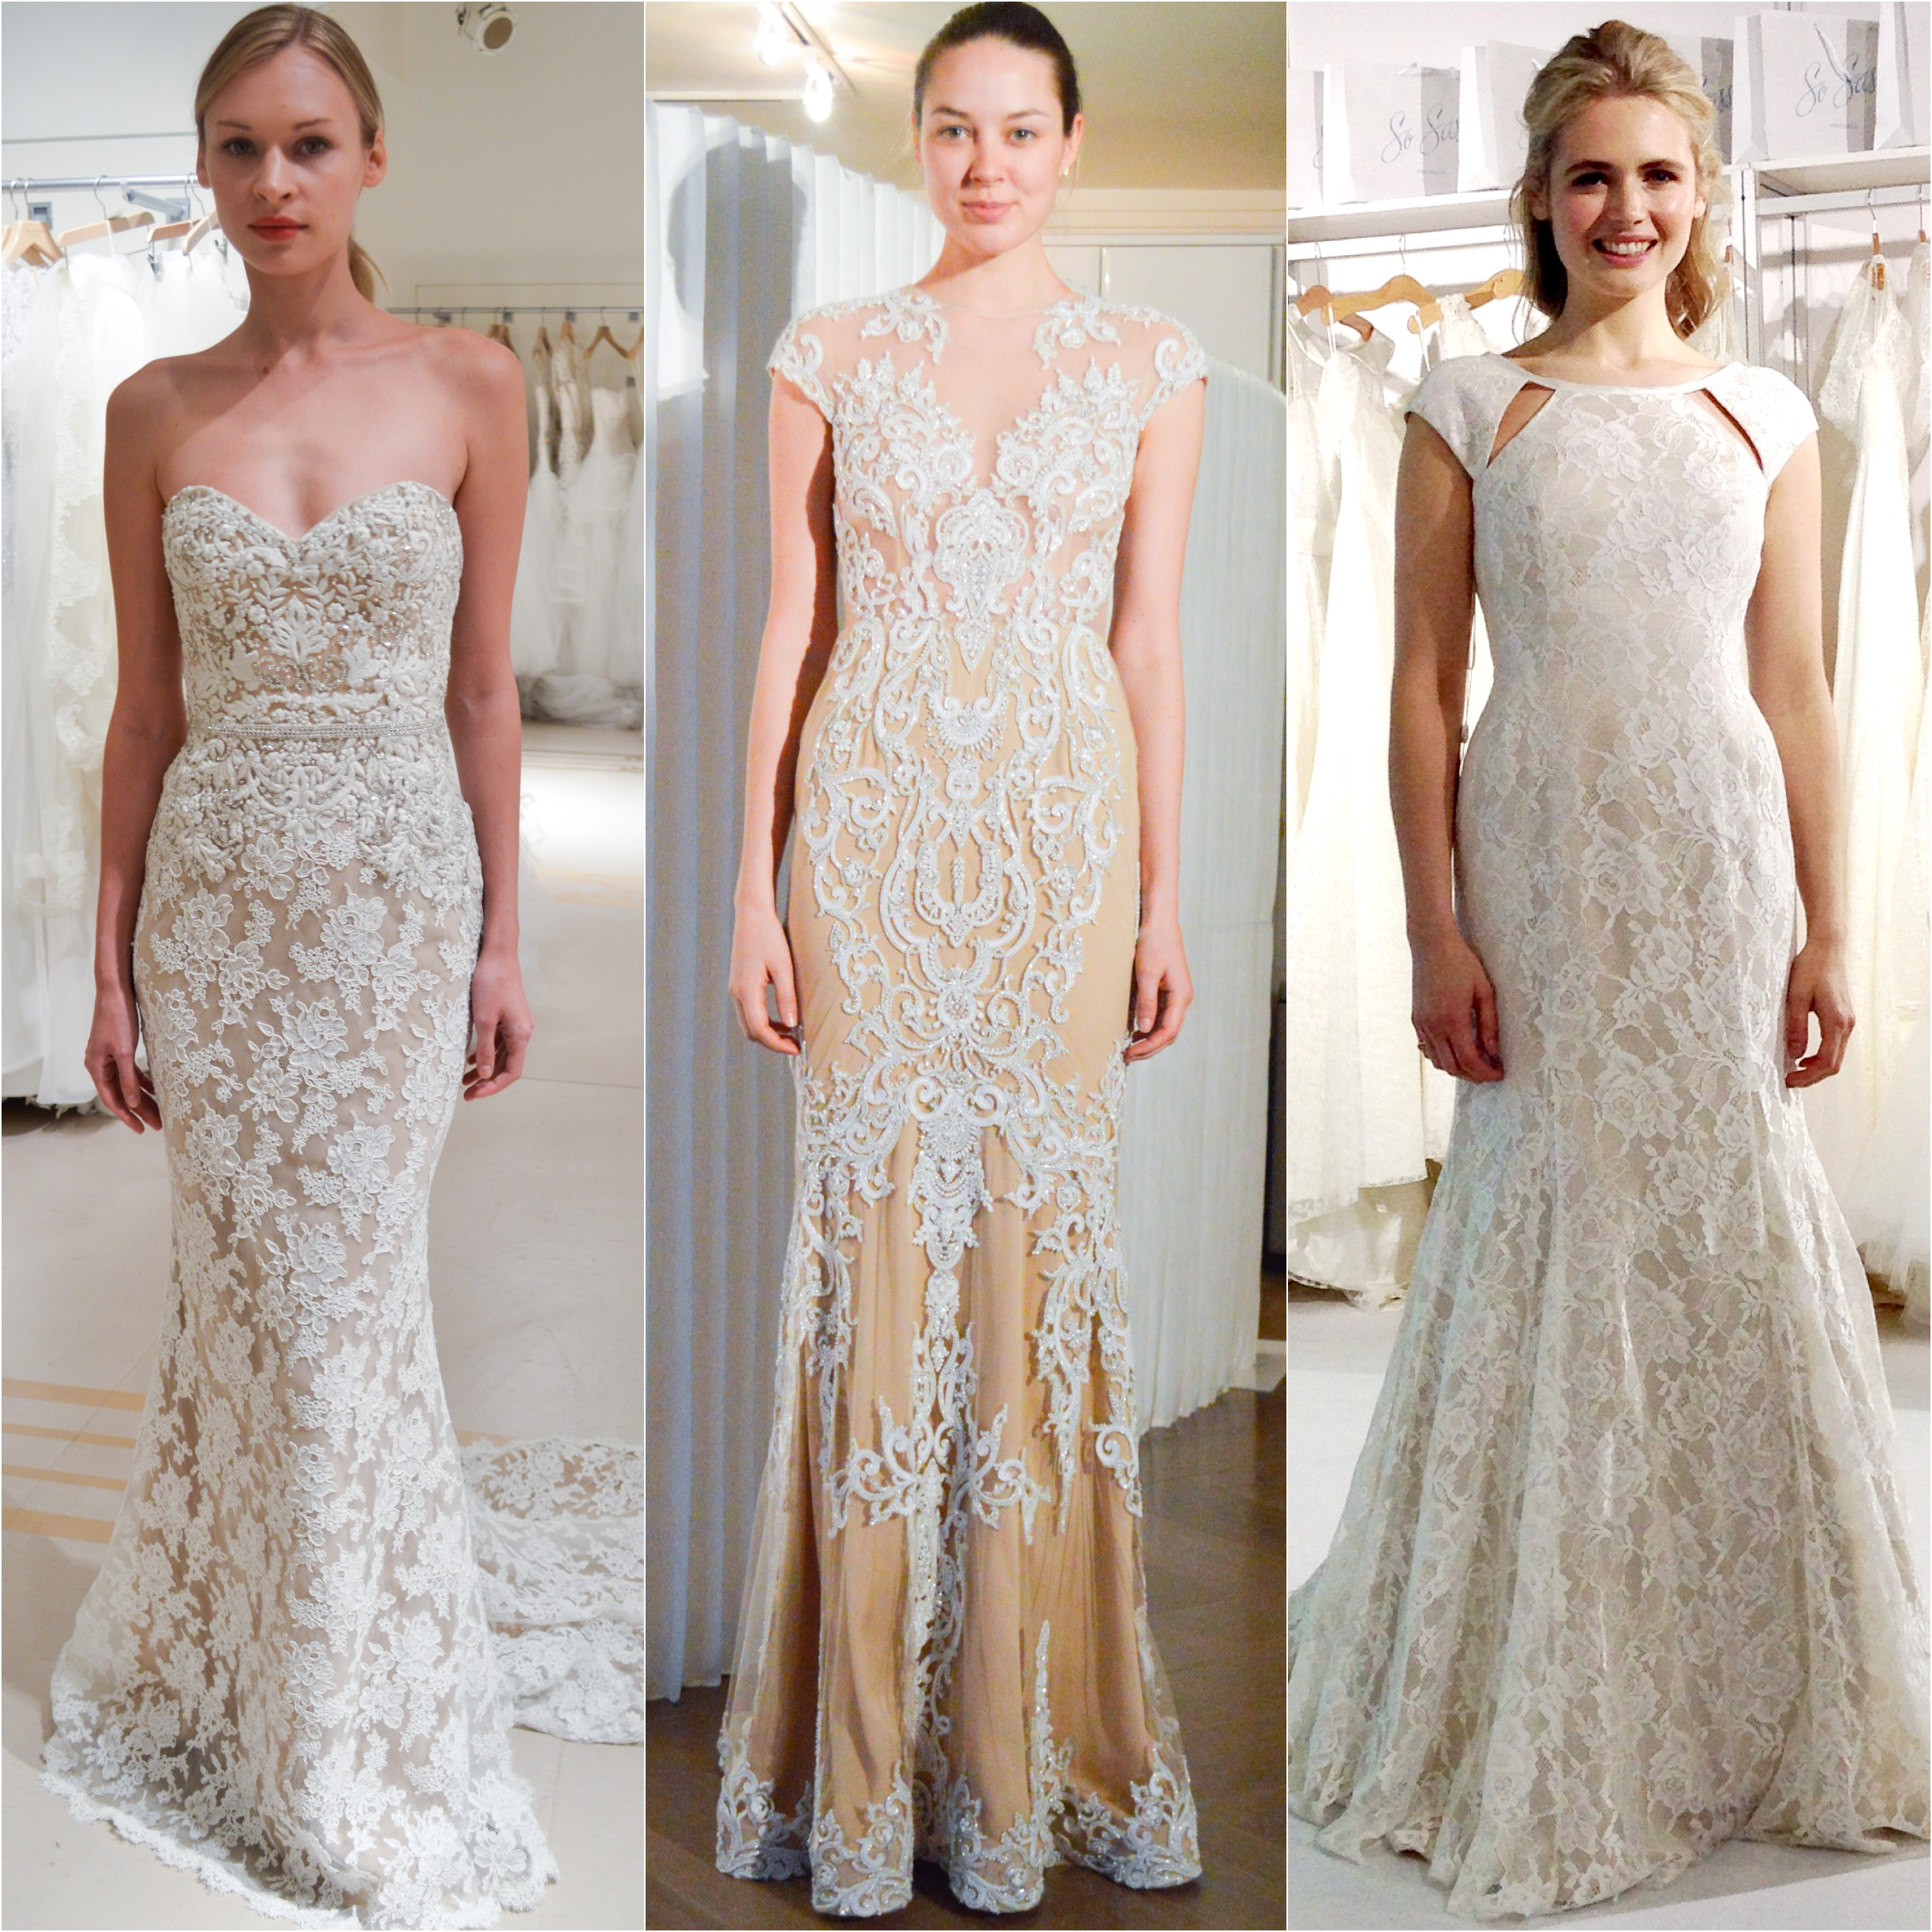 2015 Designer Wedding Gowns: Spring 2015 Bridal Trend Report